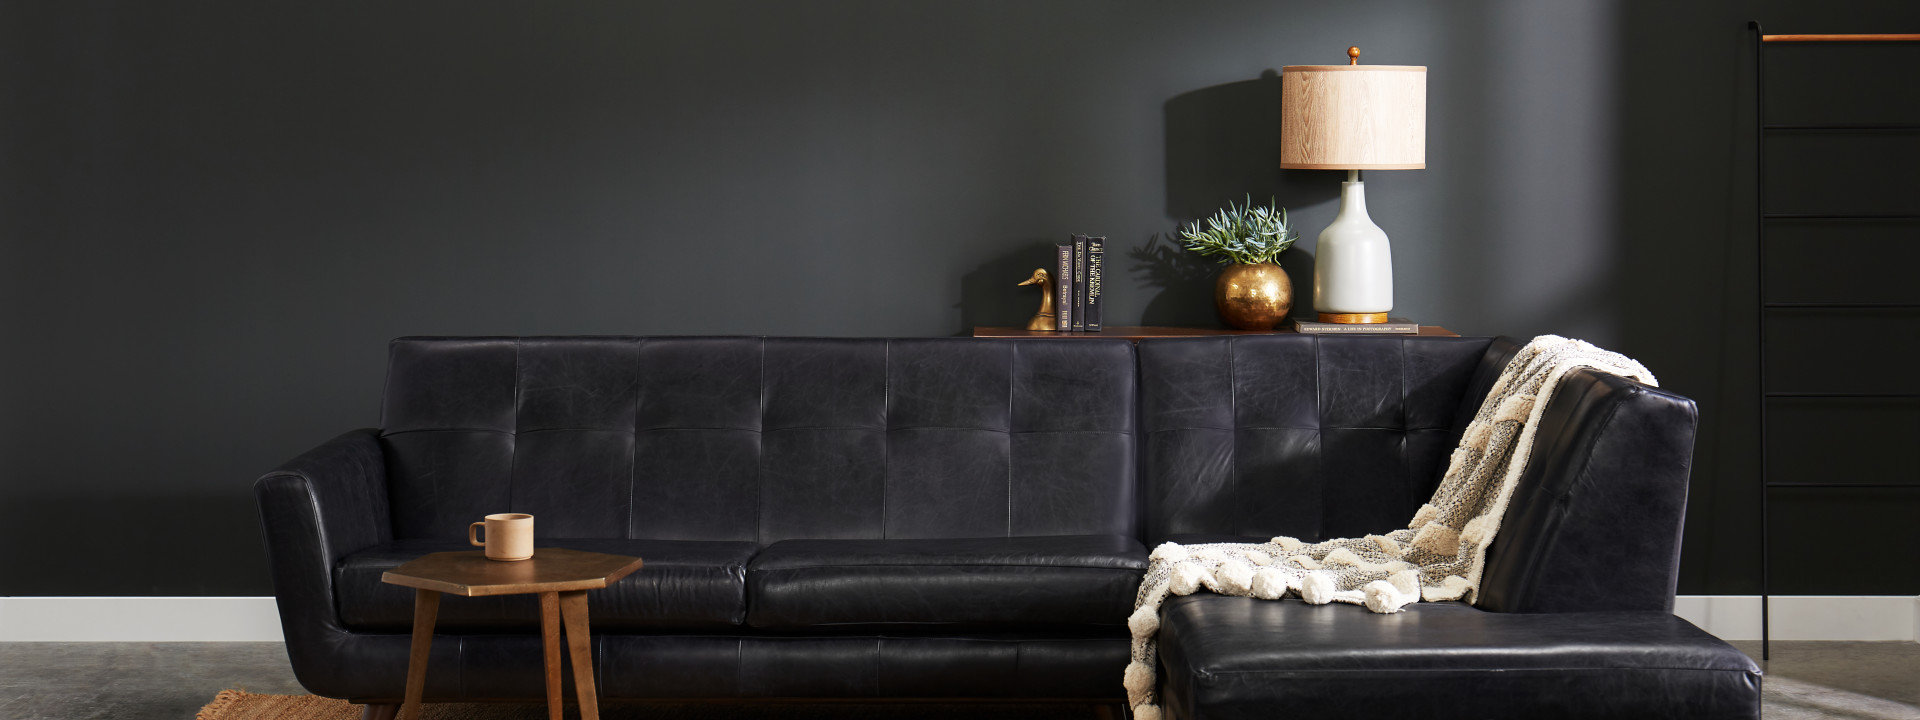 How To Pull Off A Monochromatic Room Design Joybird